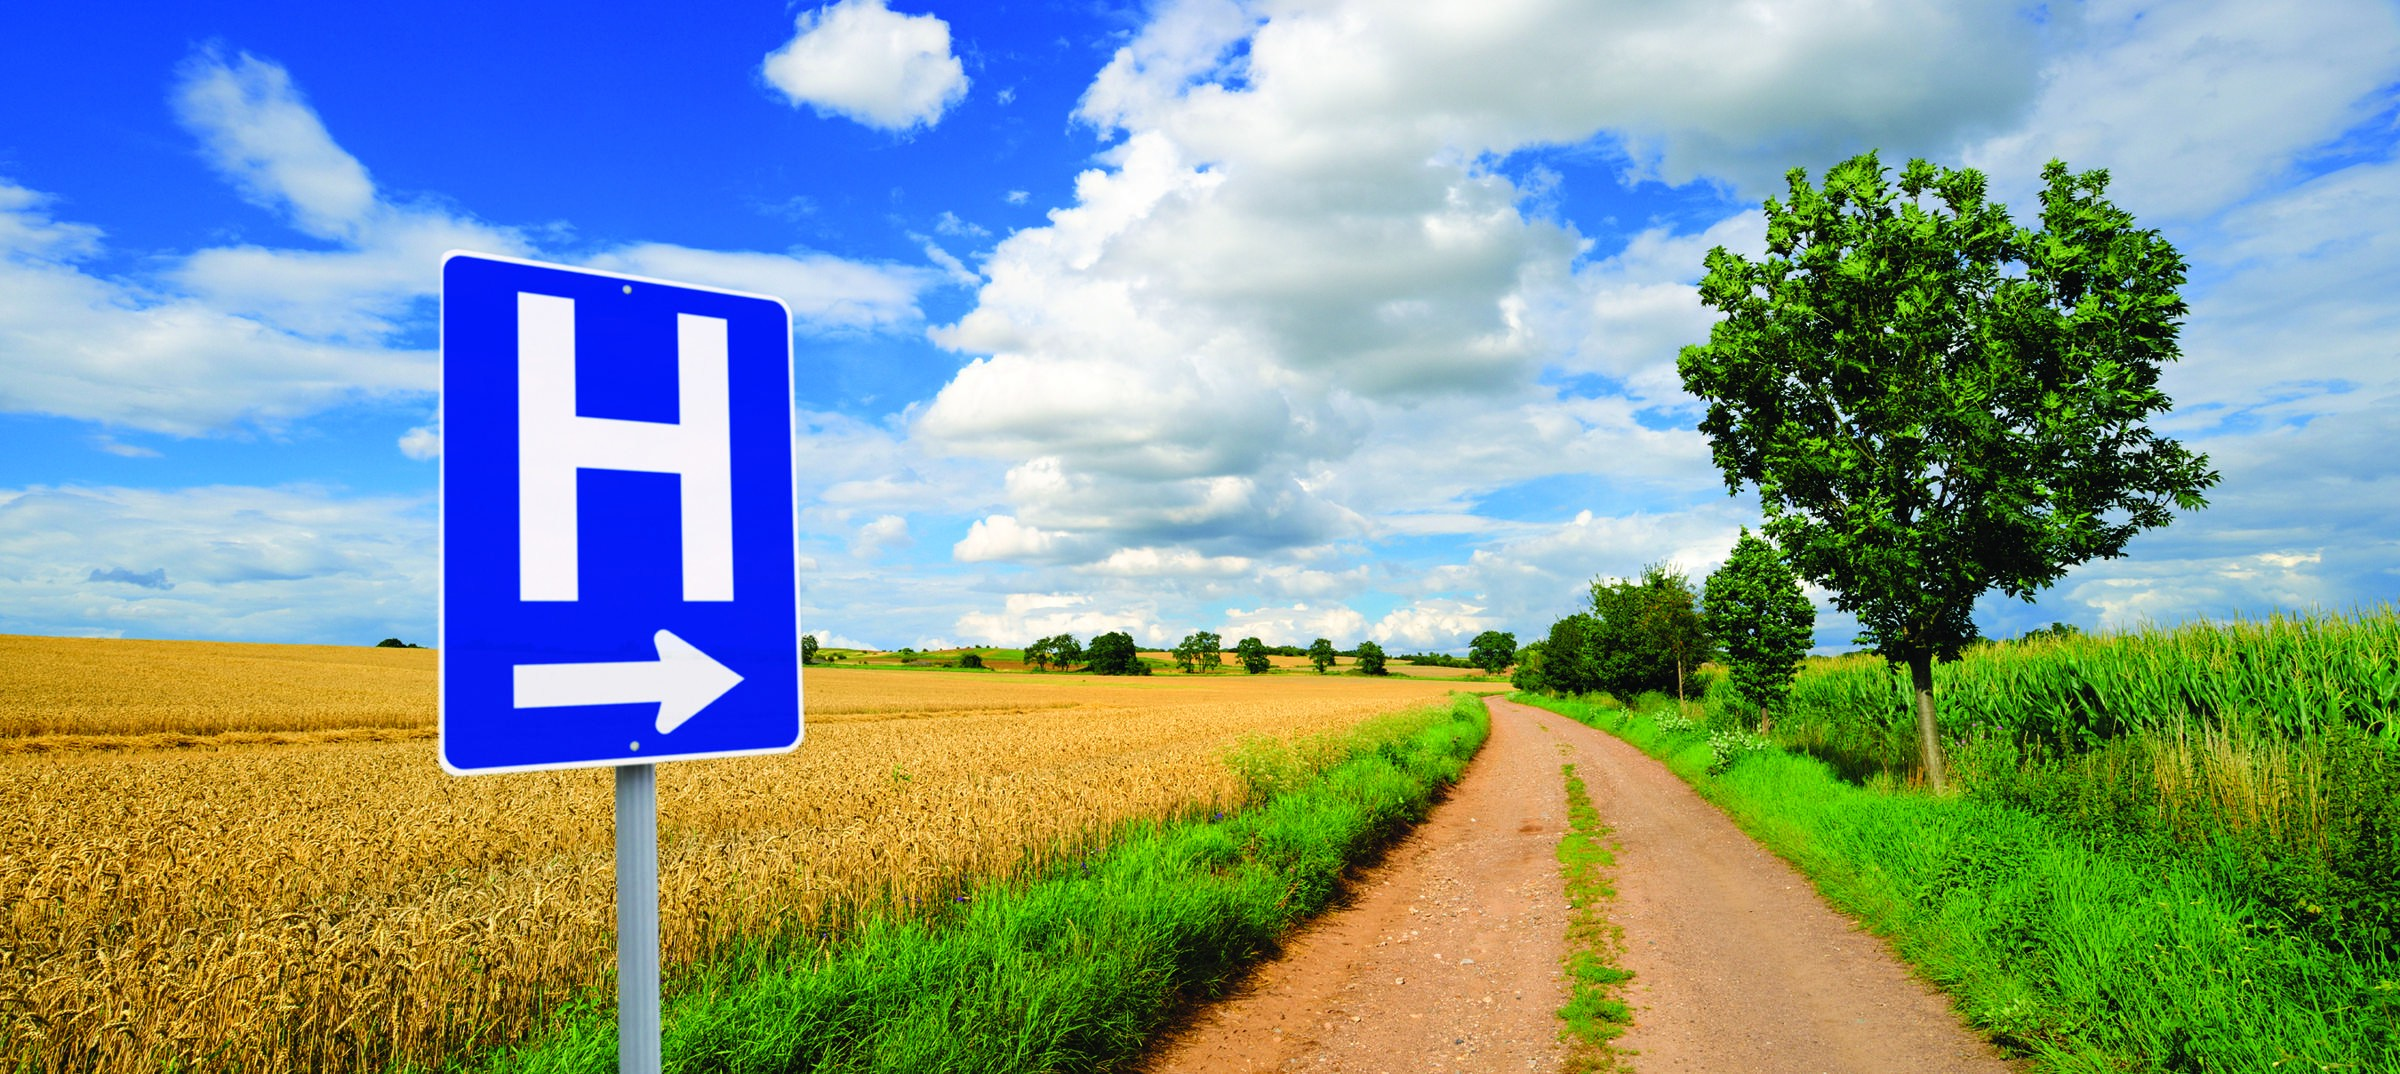 Rural hospital closures are increasing and generating wider scale healthcare issues